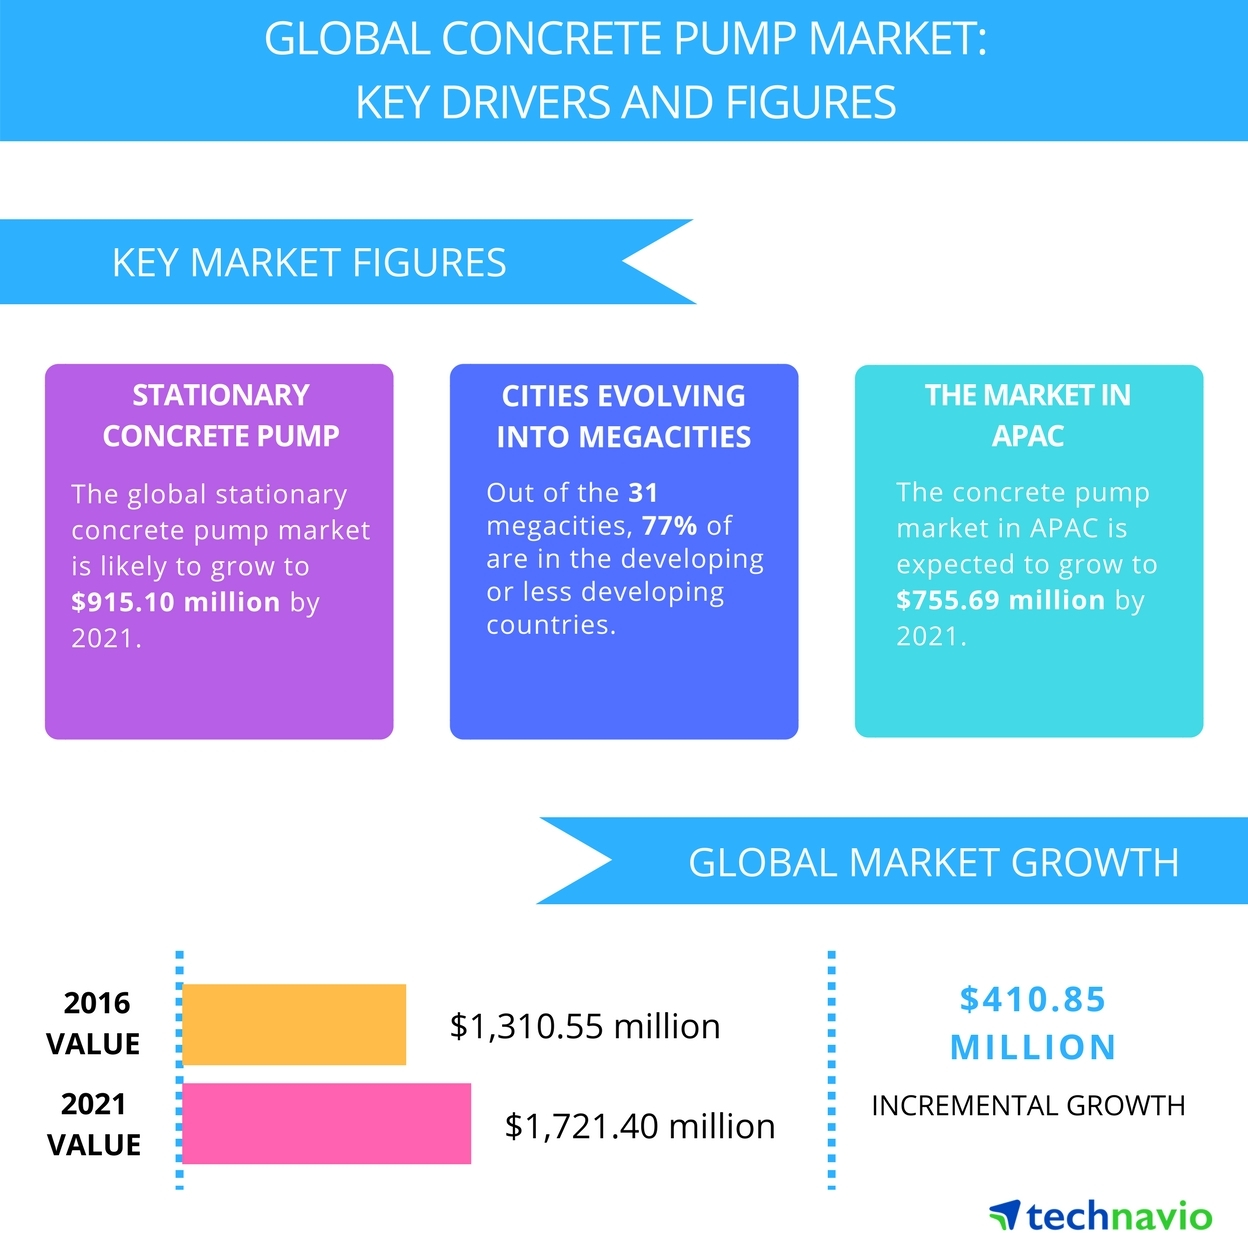 Top 5 Vendors in the Concrete Pump Market from 2017 to 2021